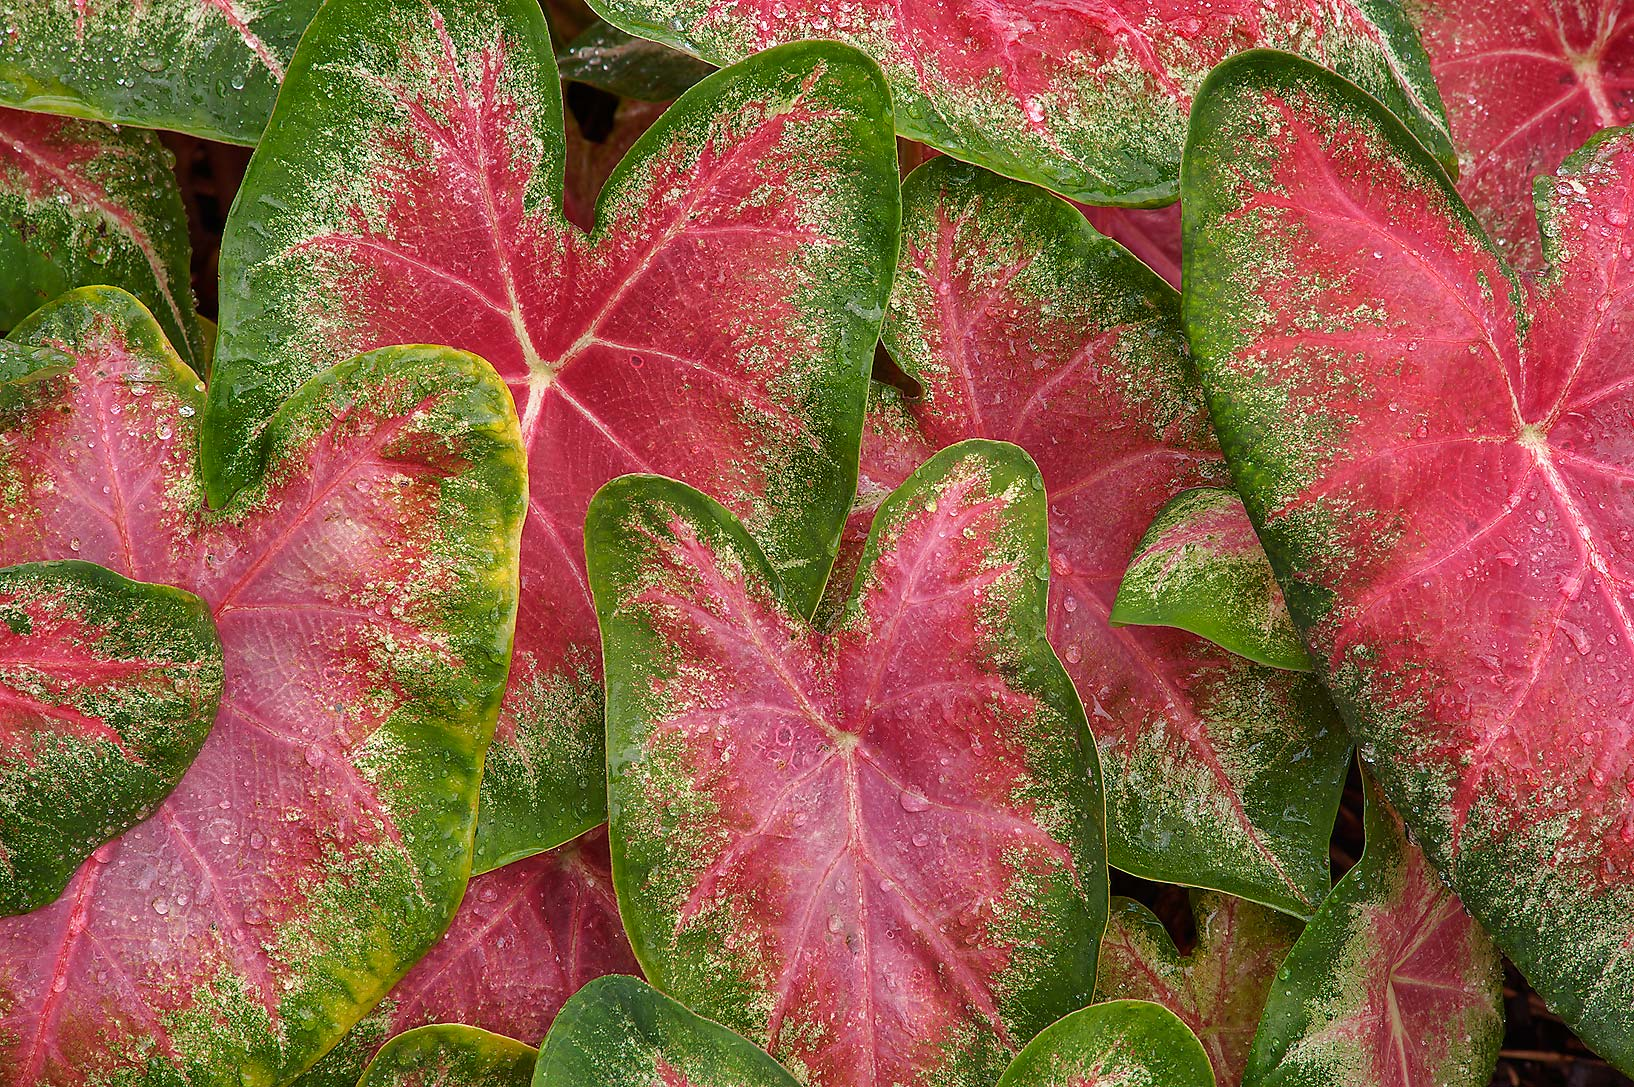 Leaves of caladium in Mercer Arboretum and Botanical Gardens. Humble (Houston area), Texas